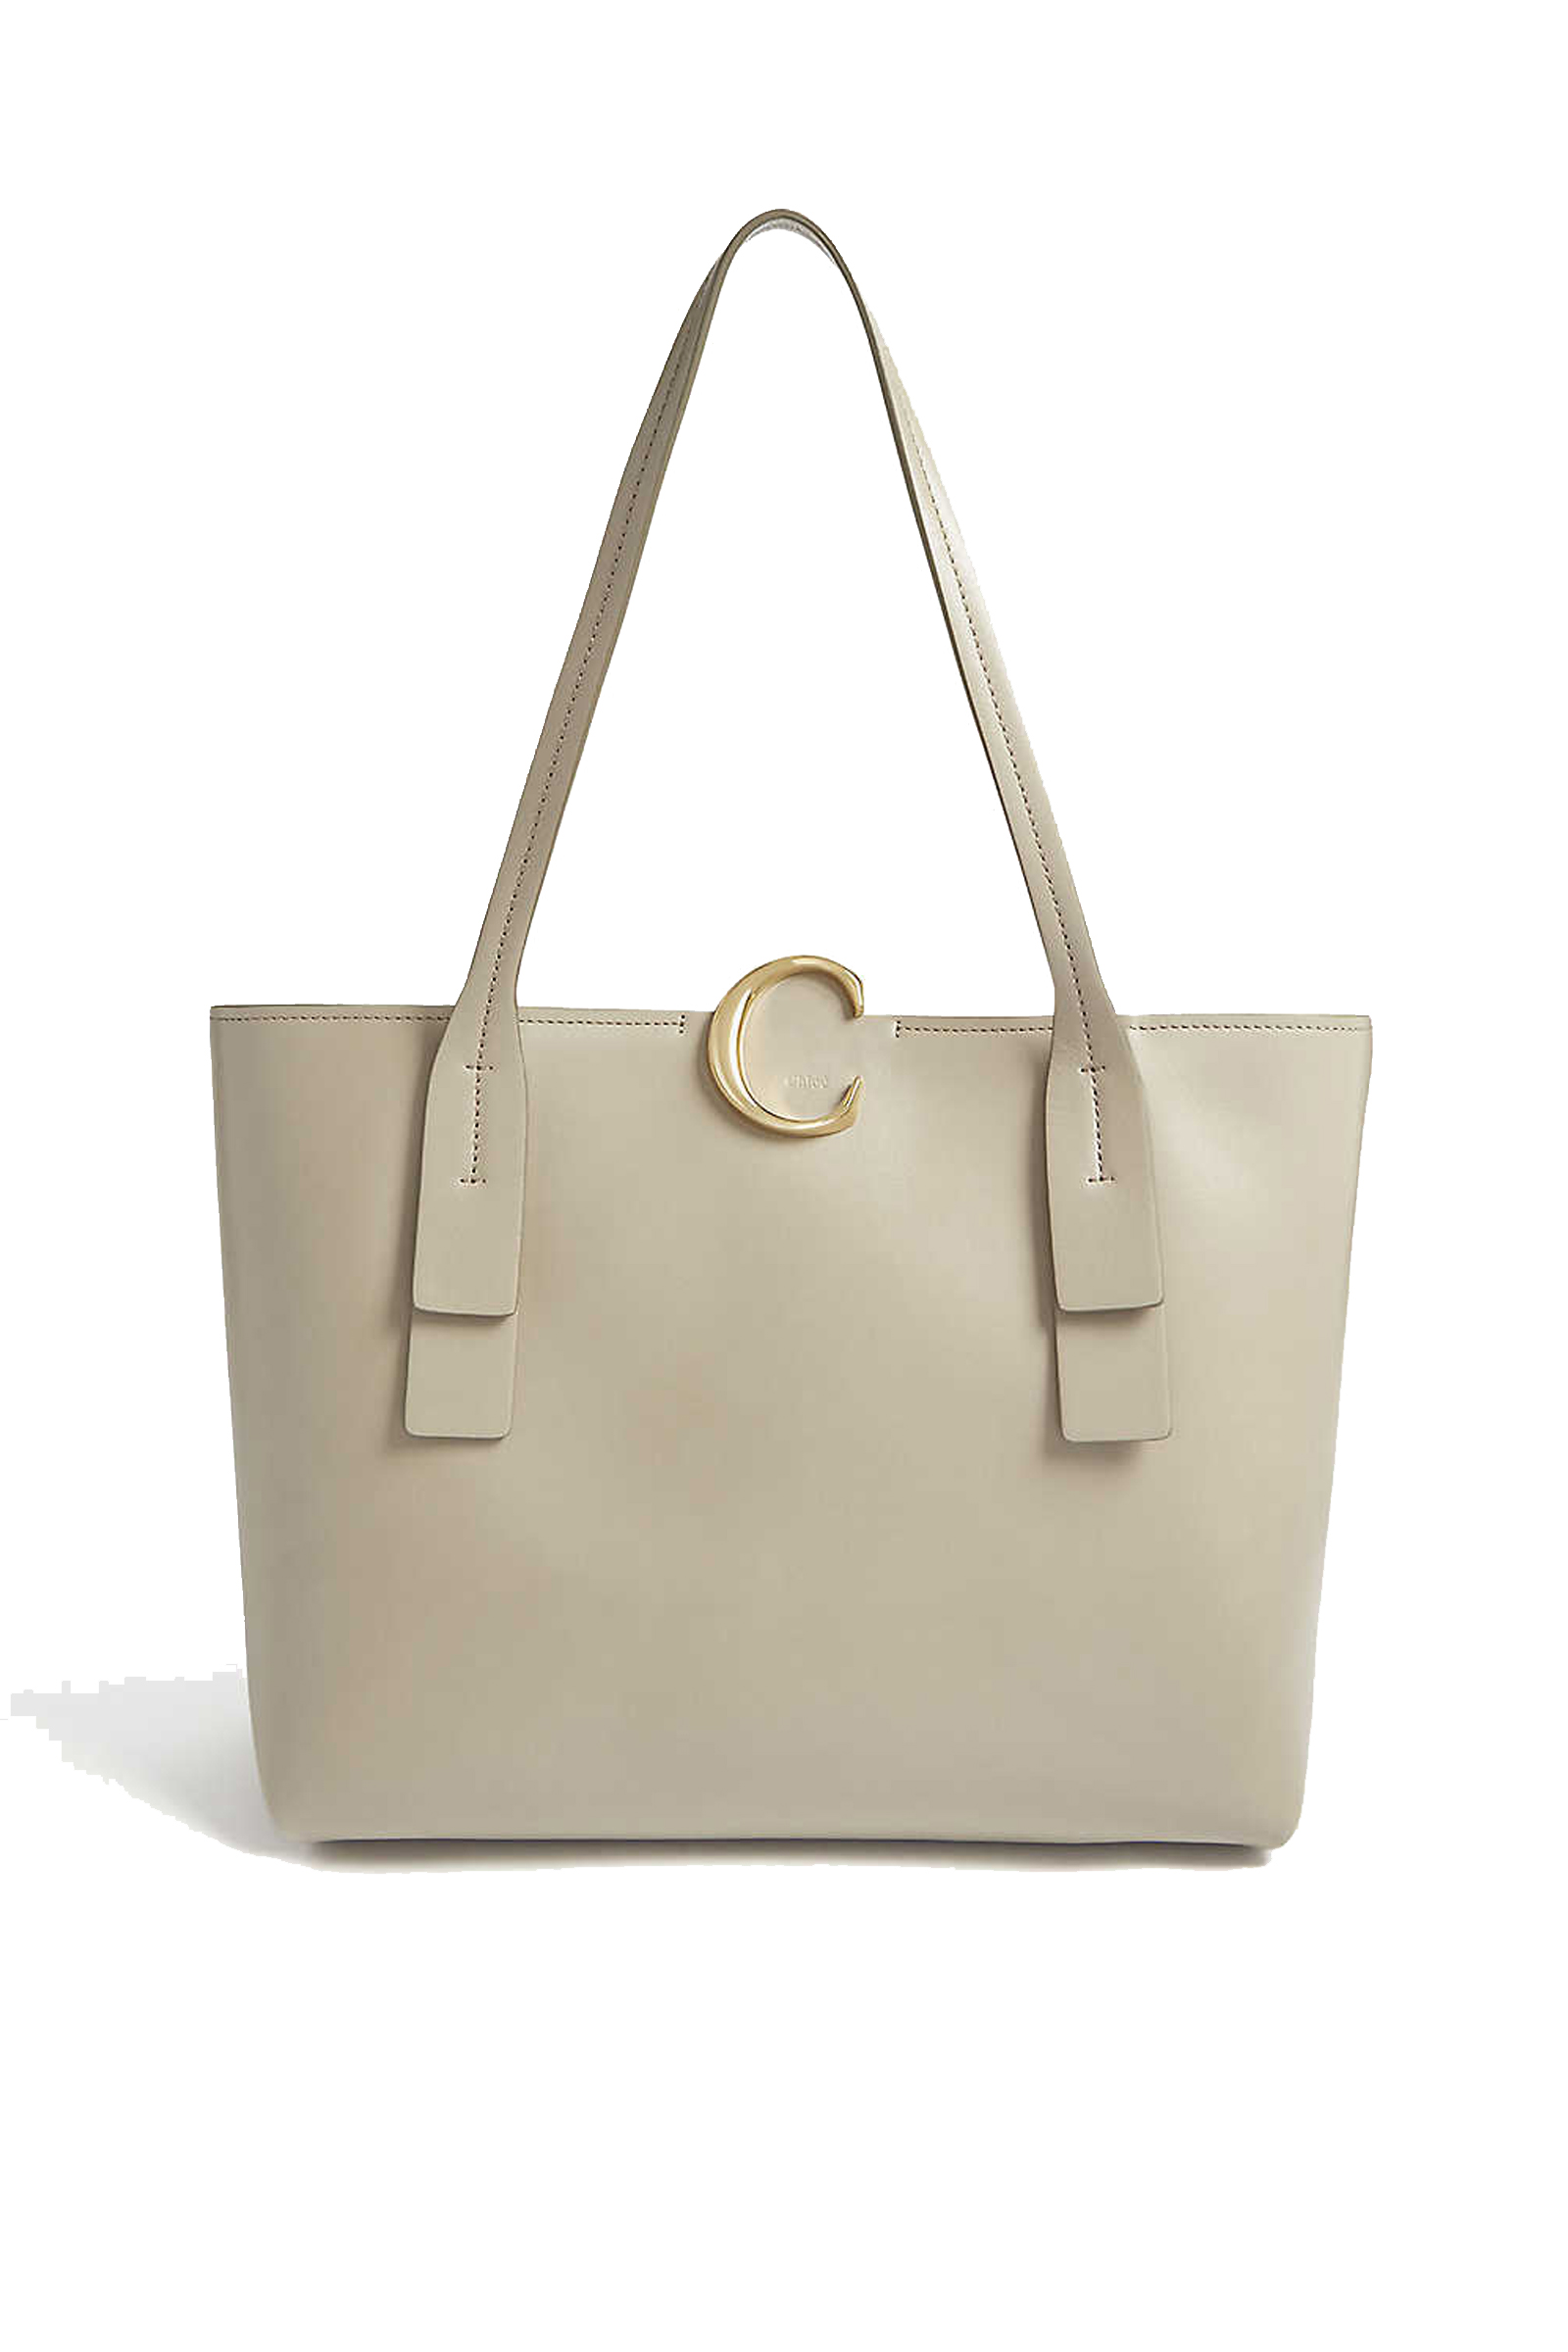 Chloé bag grey